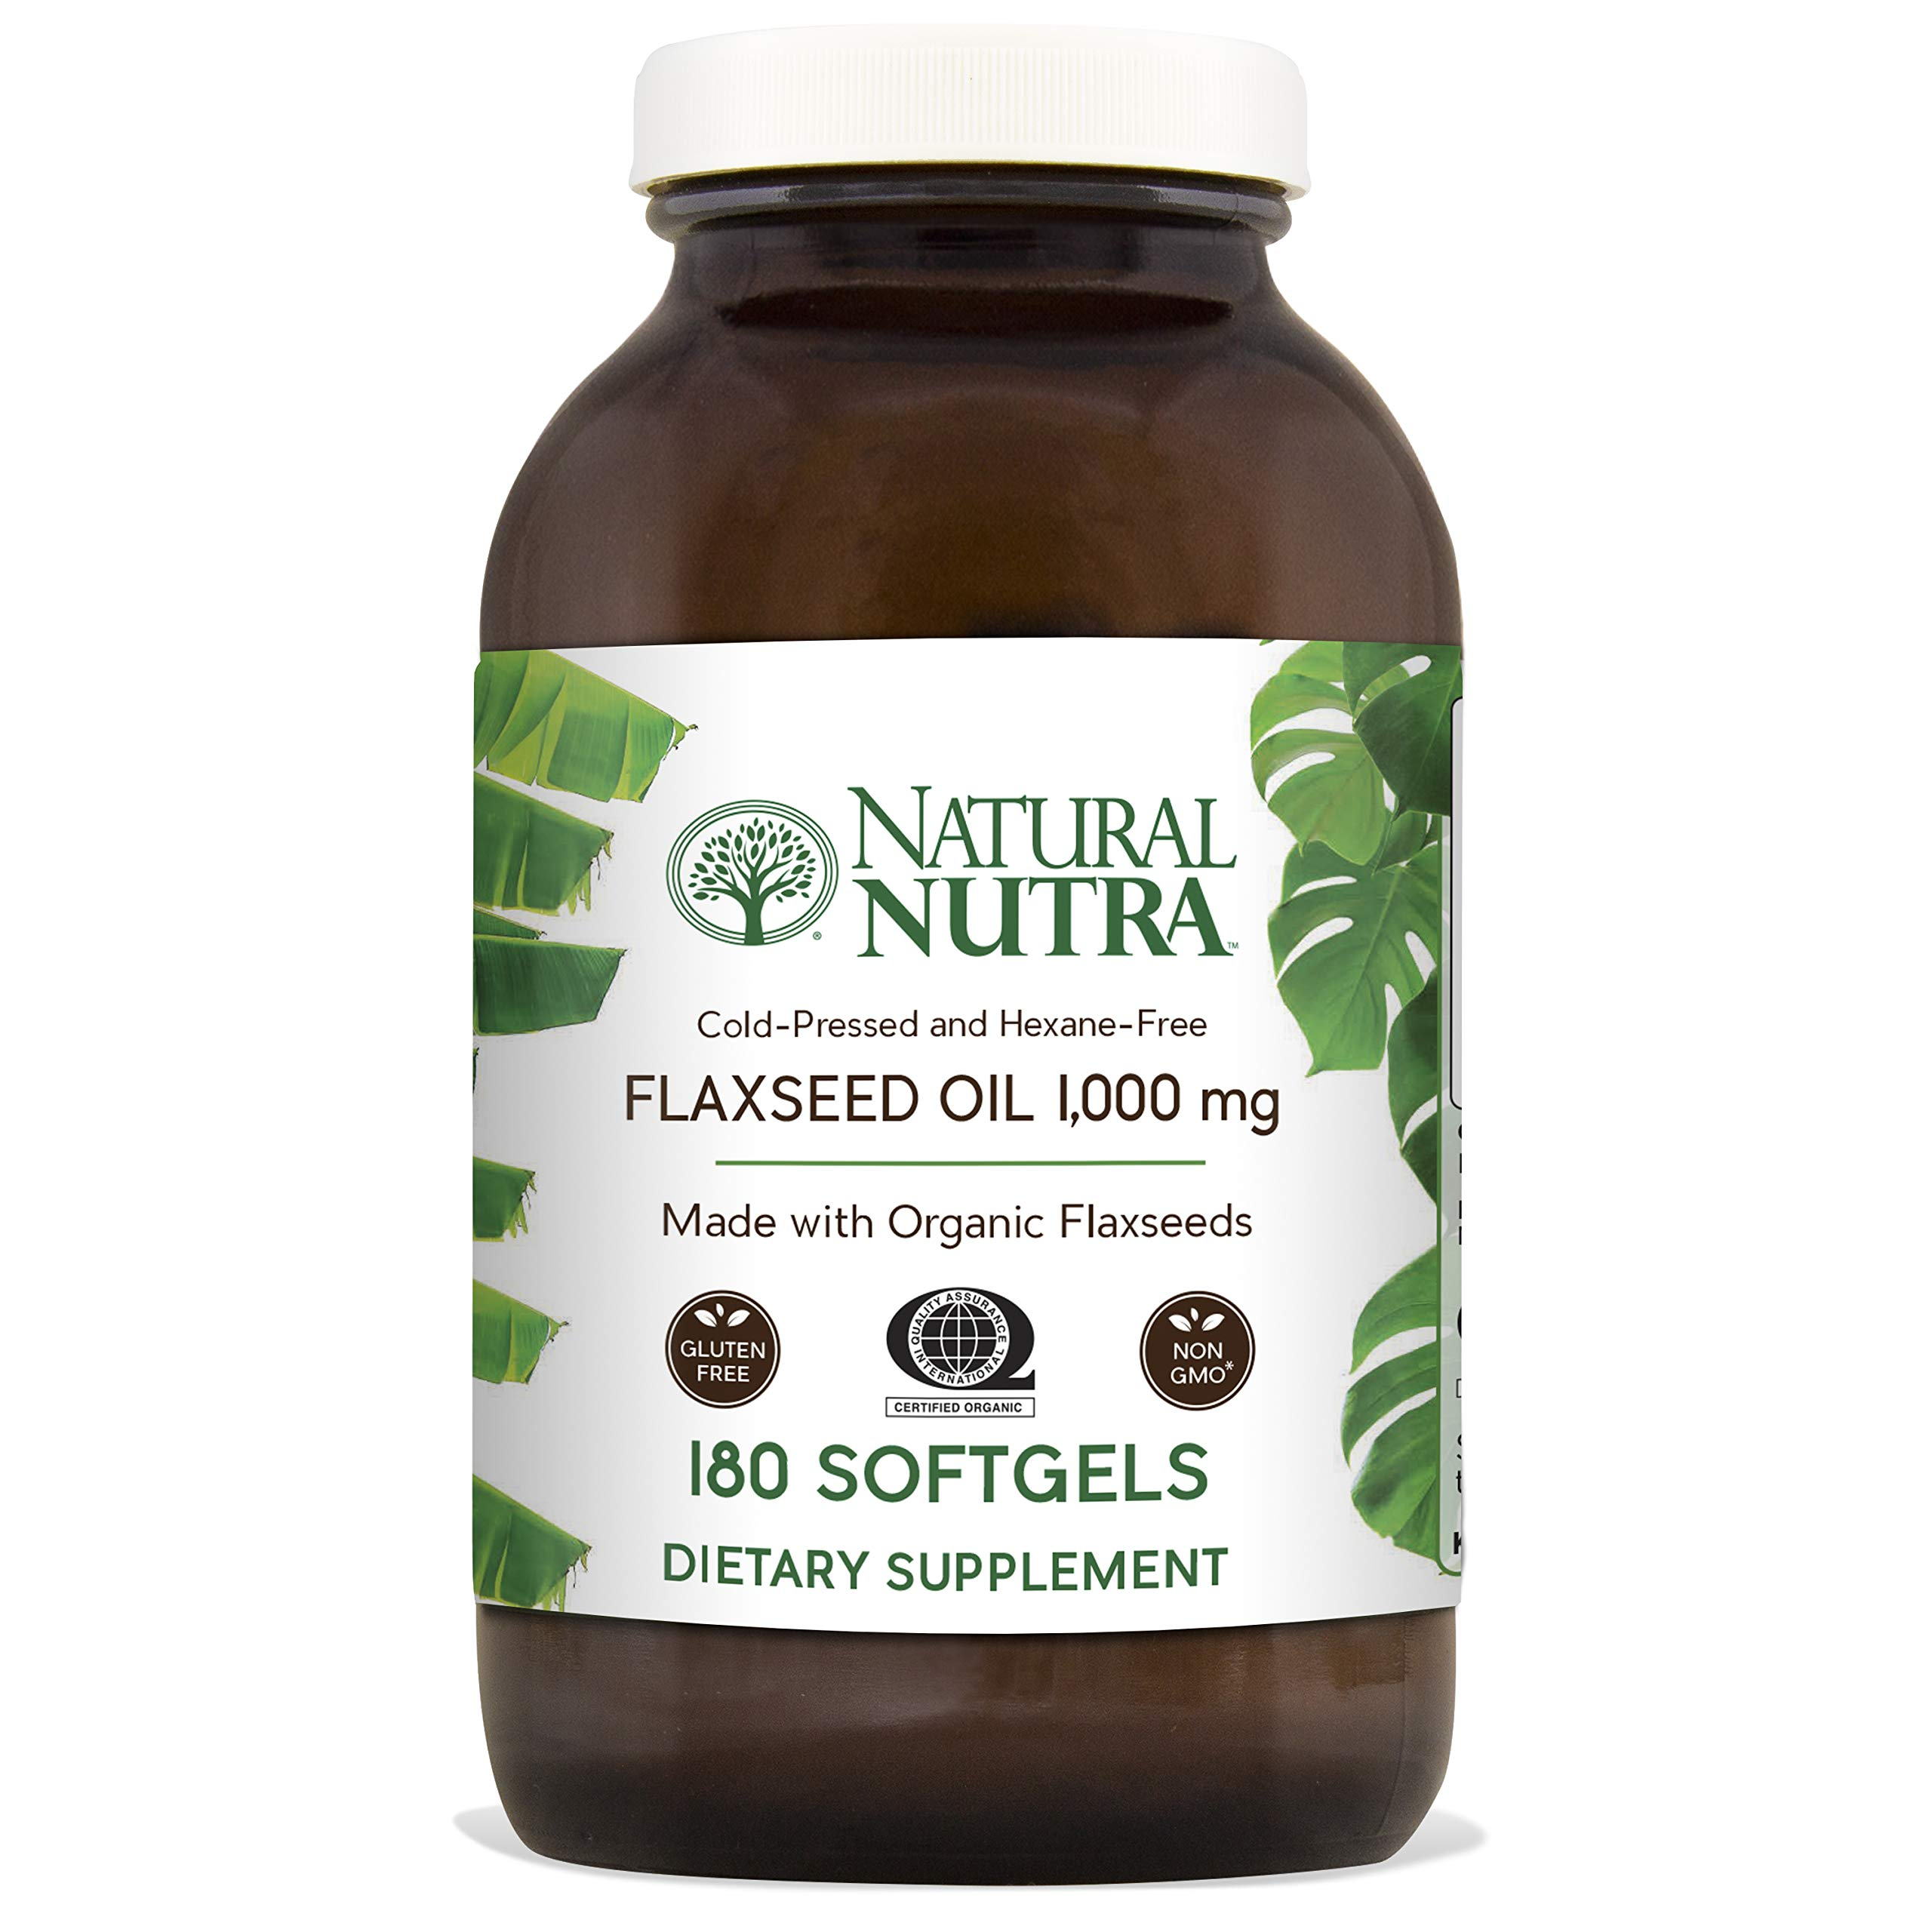 Natural Nutra Organic Flaxseed Oil Softgels, Plant Based Omega 3 6 9, Fatty Acids Supplement (ALA, LA and Oleic Acid), Cold Pressed, 1000 mg, 180 Capsules